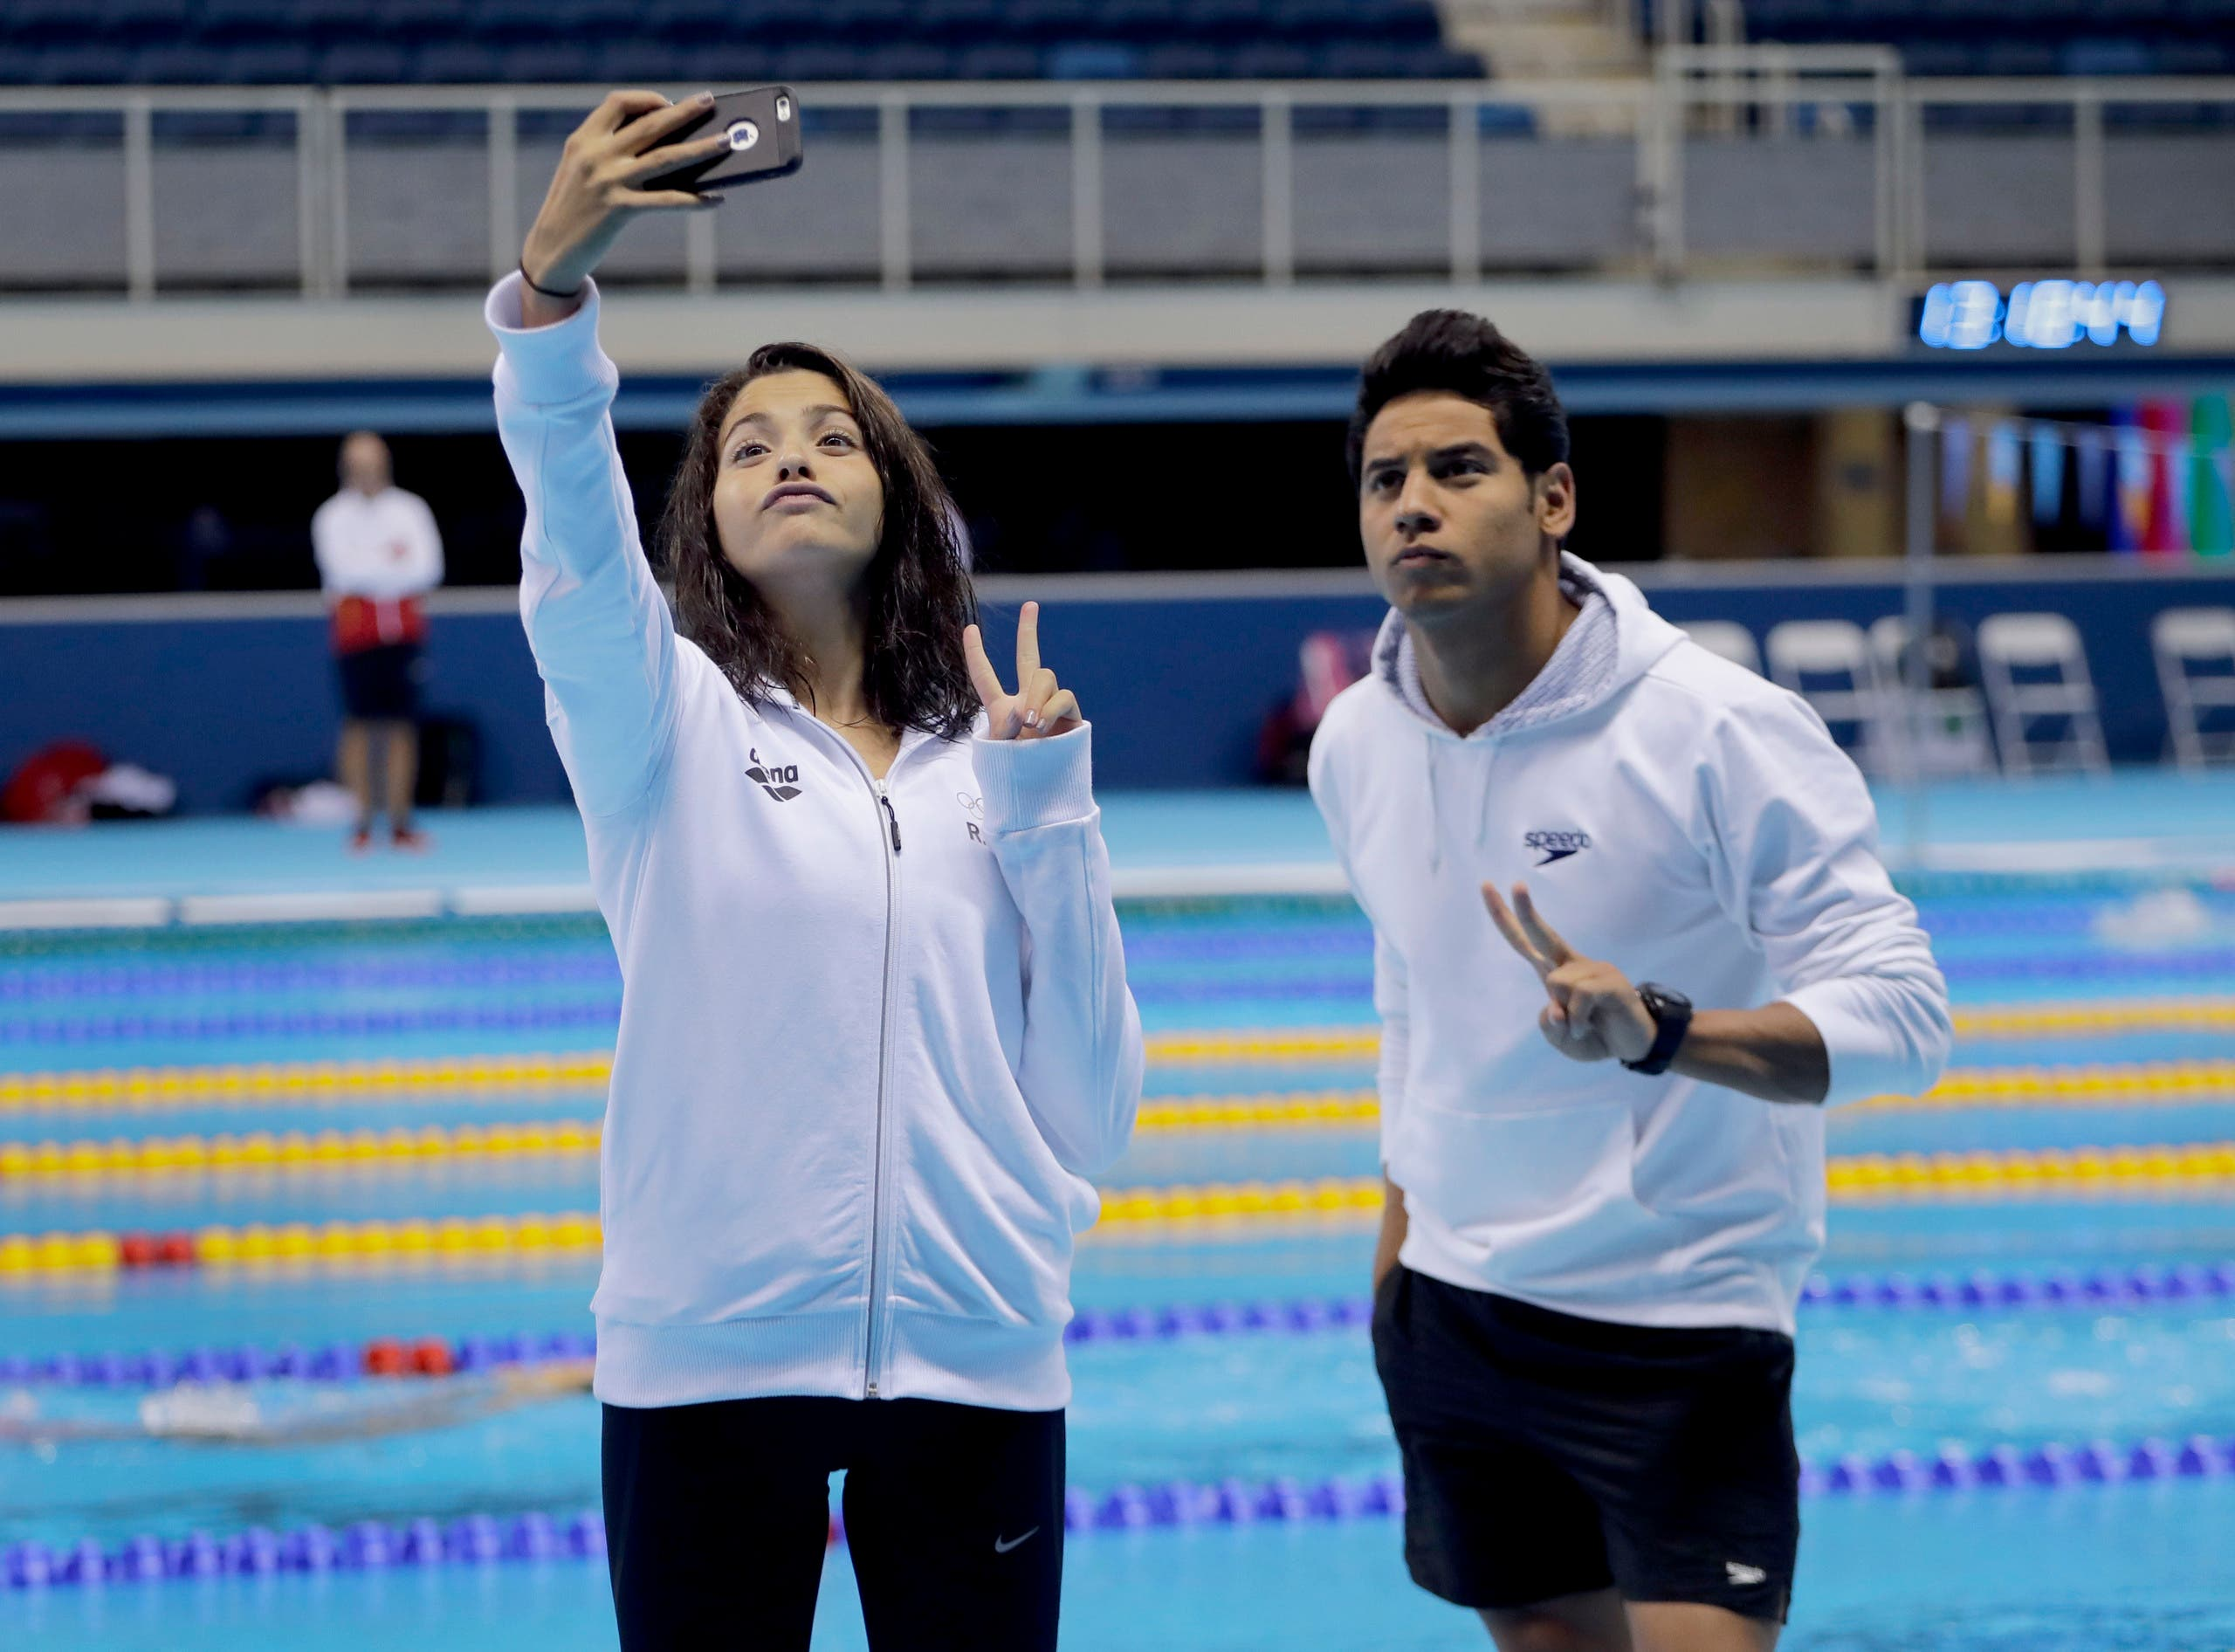 Swimmers on the Olympic refugee team Rami Anis, right, and Yusra Mardini pose for a selfie after practice at the Olympic Aquatics Stadium ahead of the Rio Olympics in Rio de Janeiro, Brazil, Thursday, July 28, 2016. AP